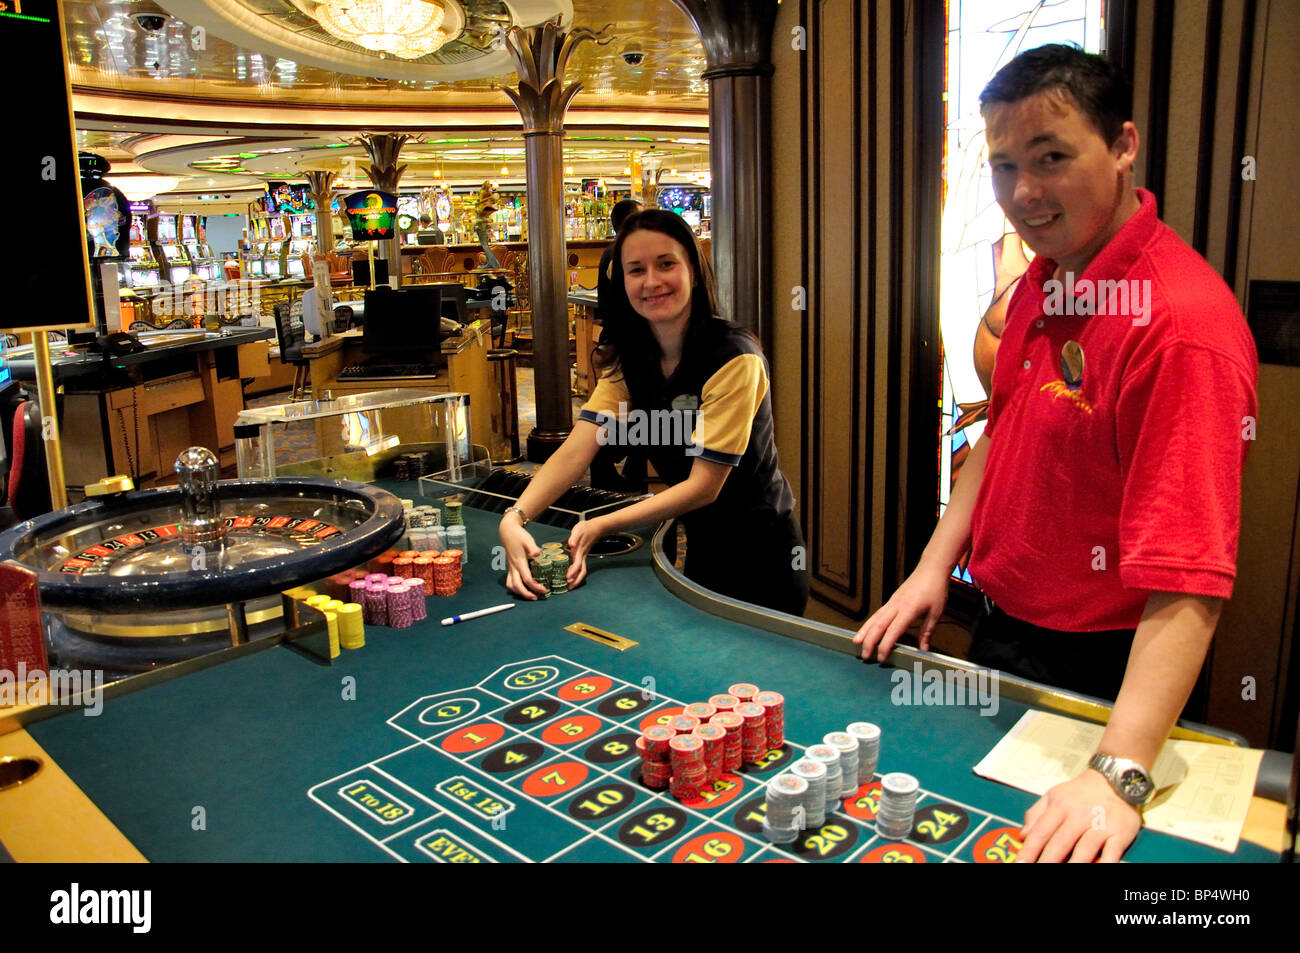 Casino dealer royal caribbean